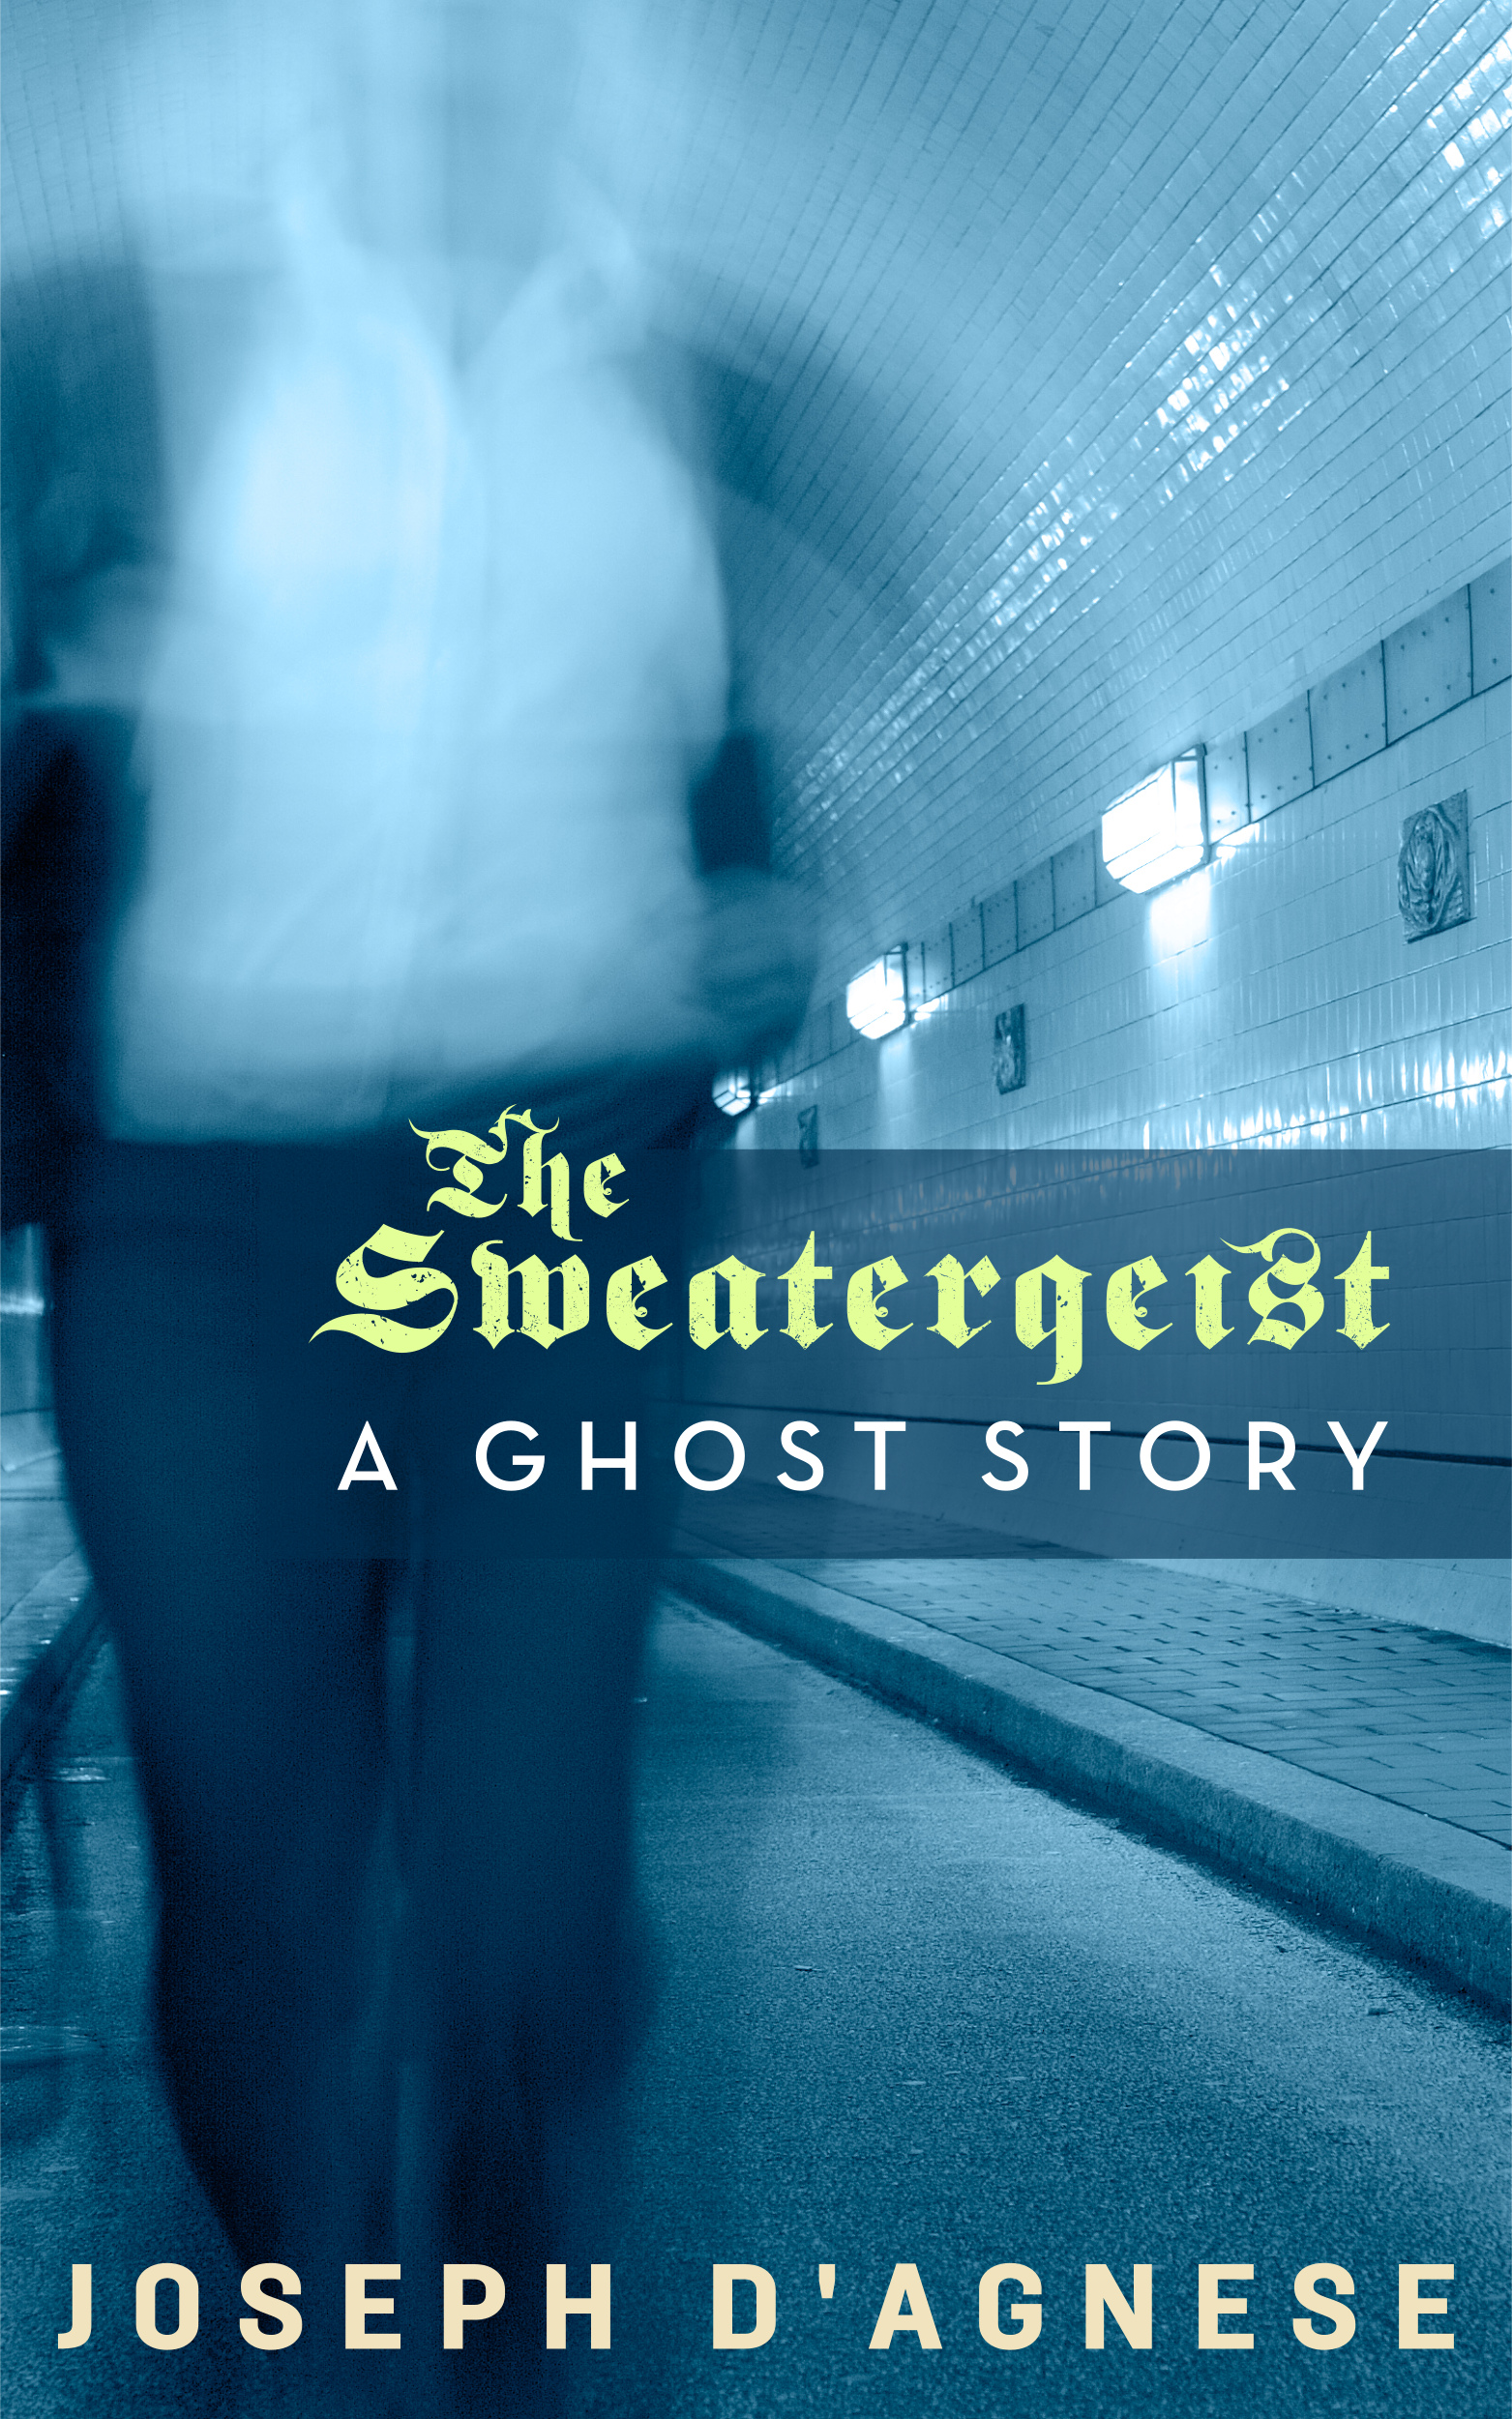 The Sweatergeist, a twisted private eye ghost story, by Joseph D'Agnese